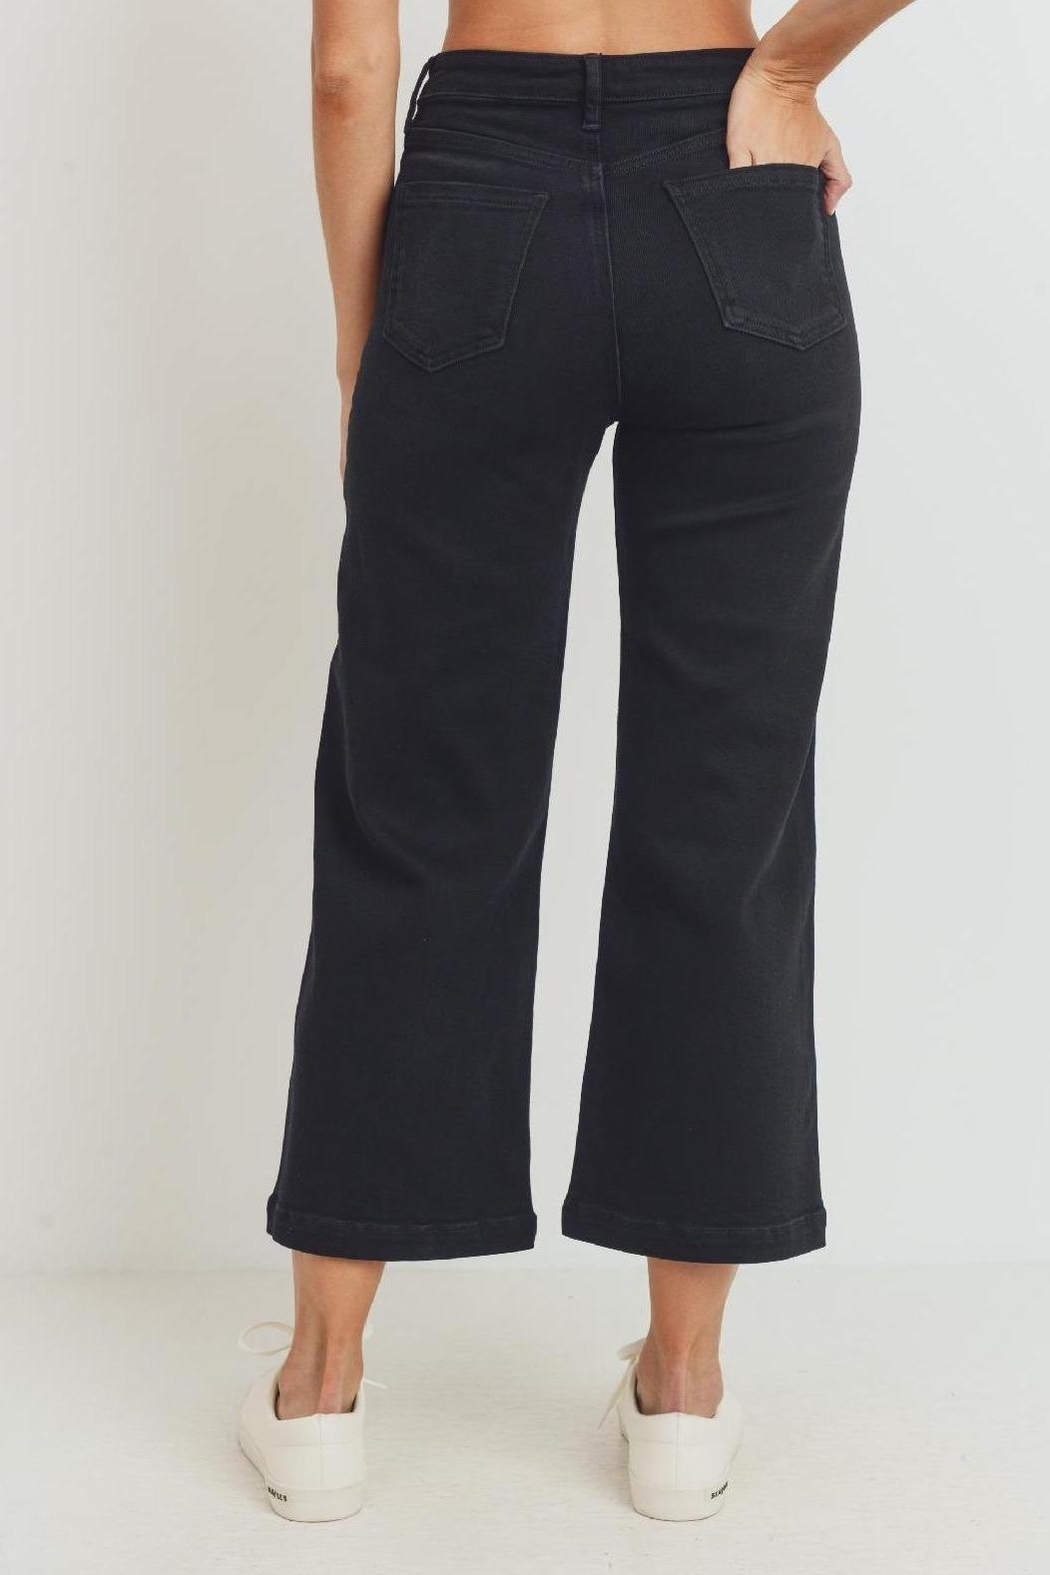 just black The Harlow Black Denim Pant (Usa Made, High Rise) - Front Full Image